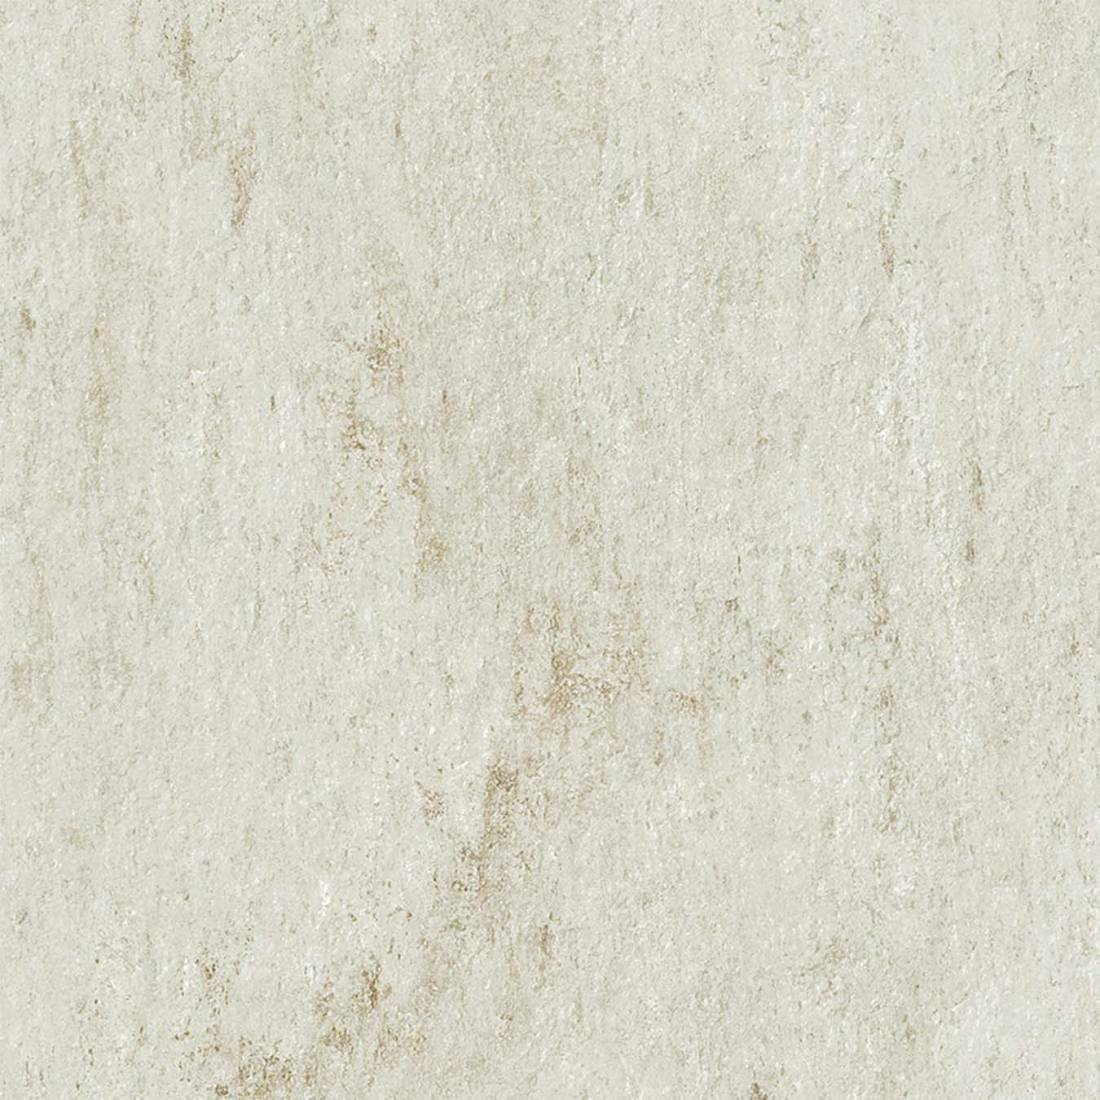 Sicily 30x30 Light Beige 1